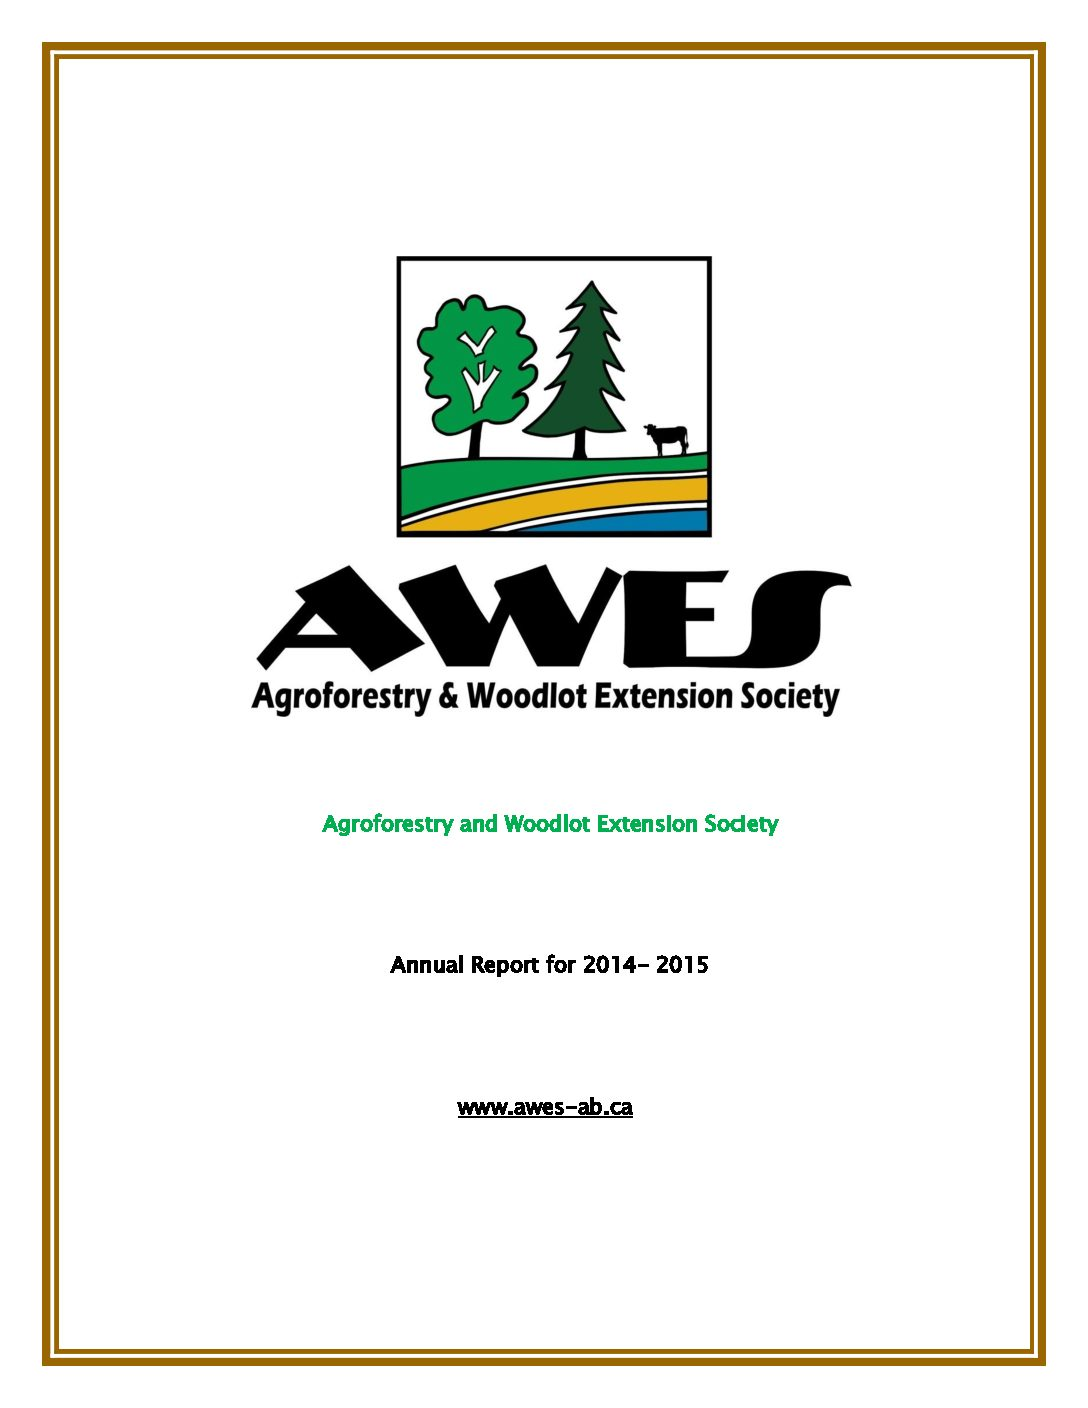 AWES Annual Report 2014-2015